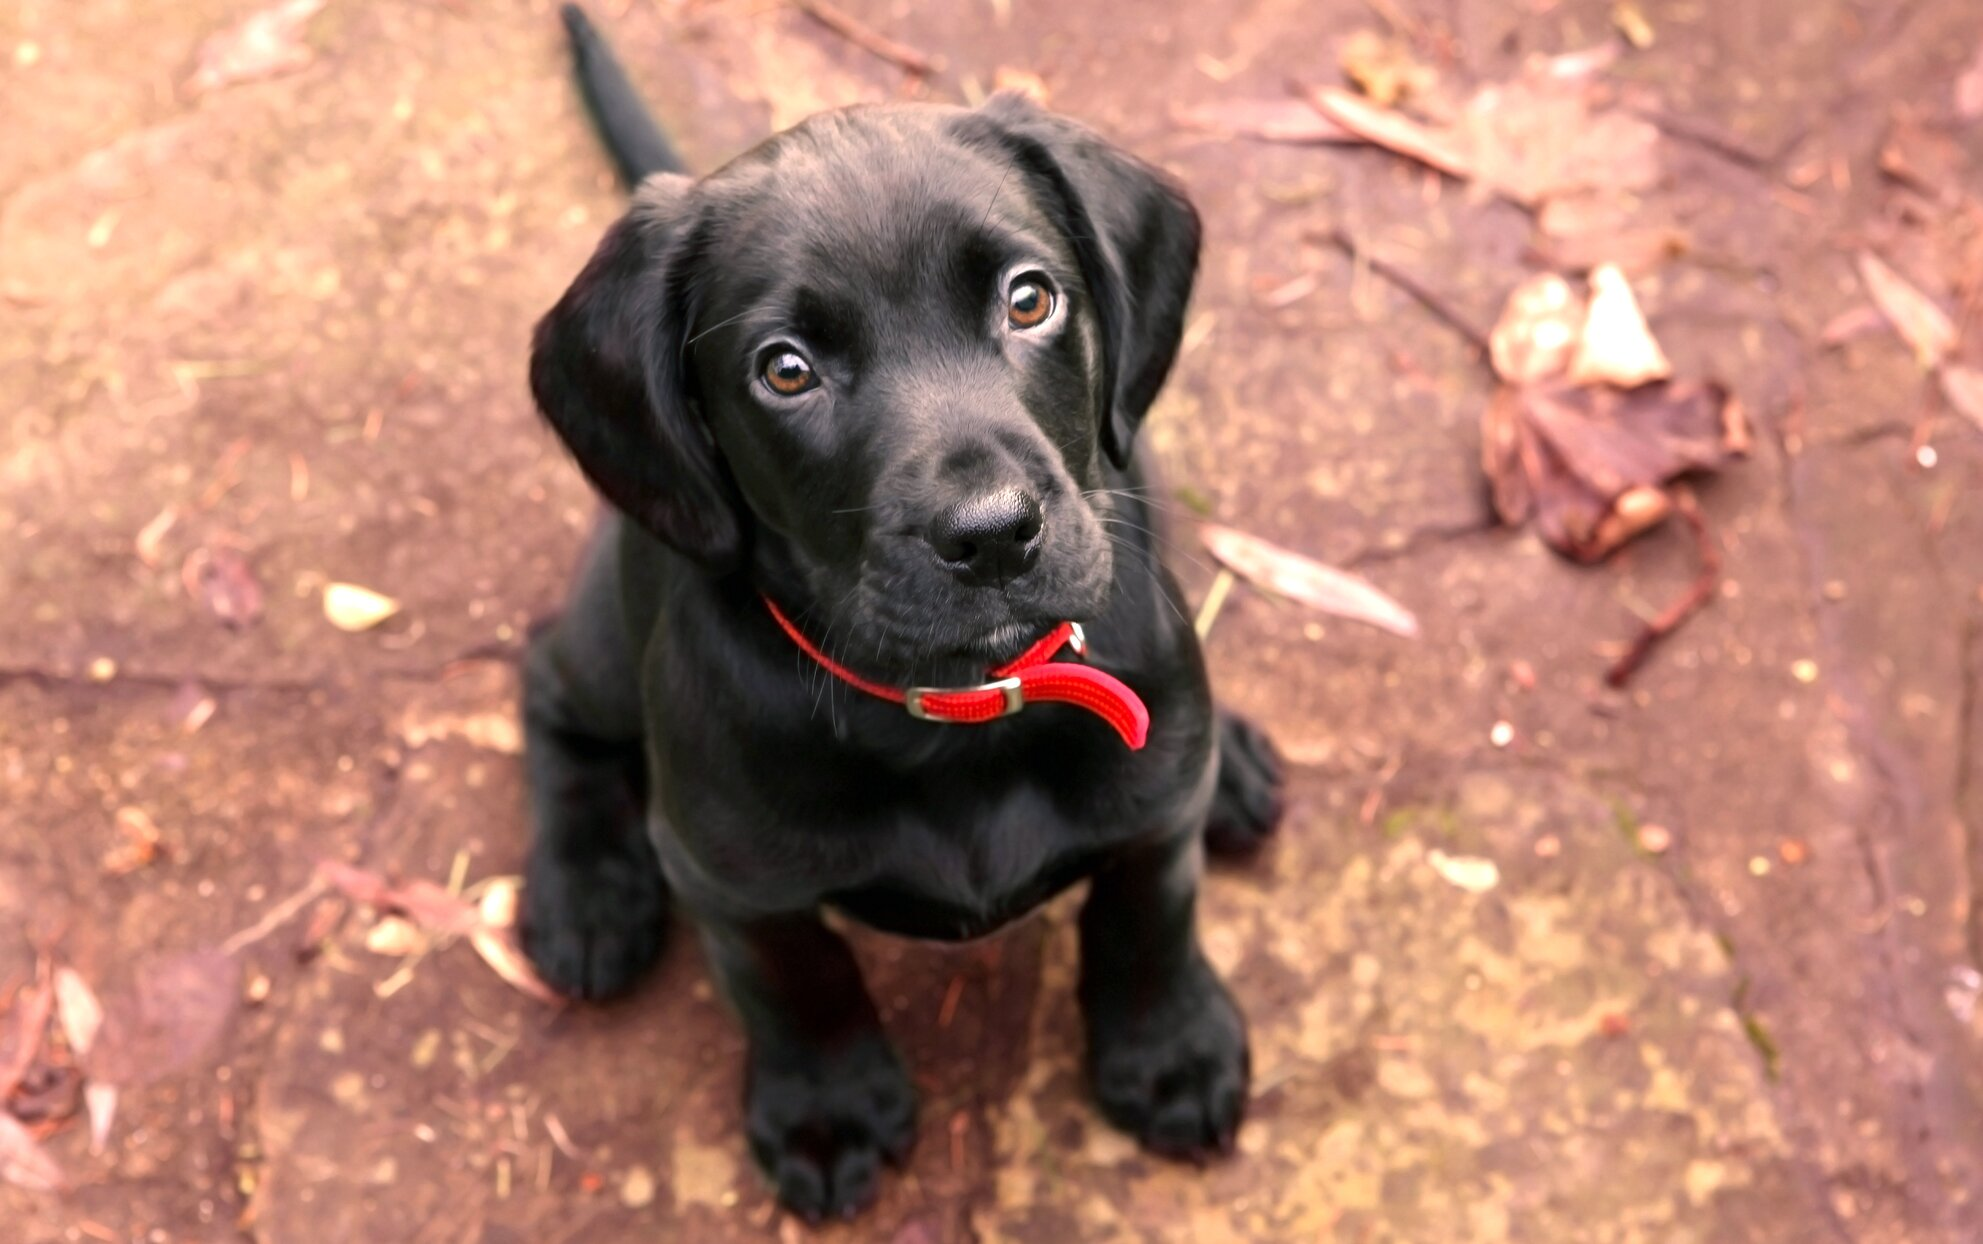 Black lab puppy sitting attentively on the ground outside